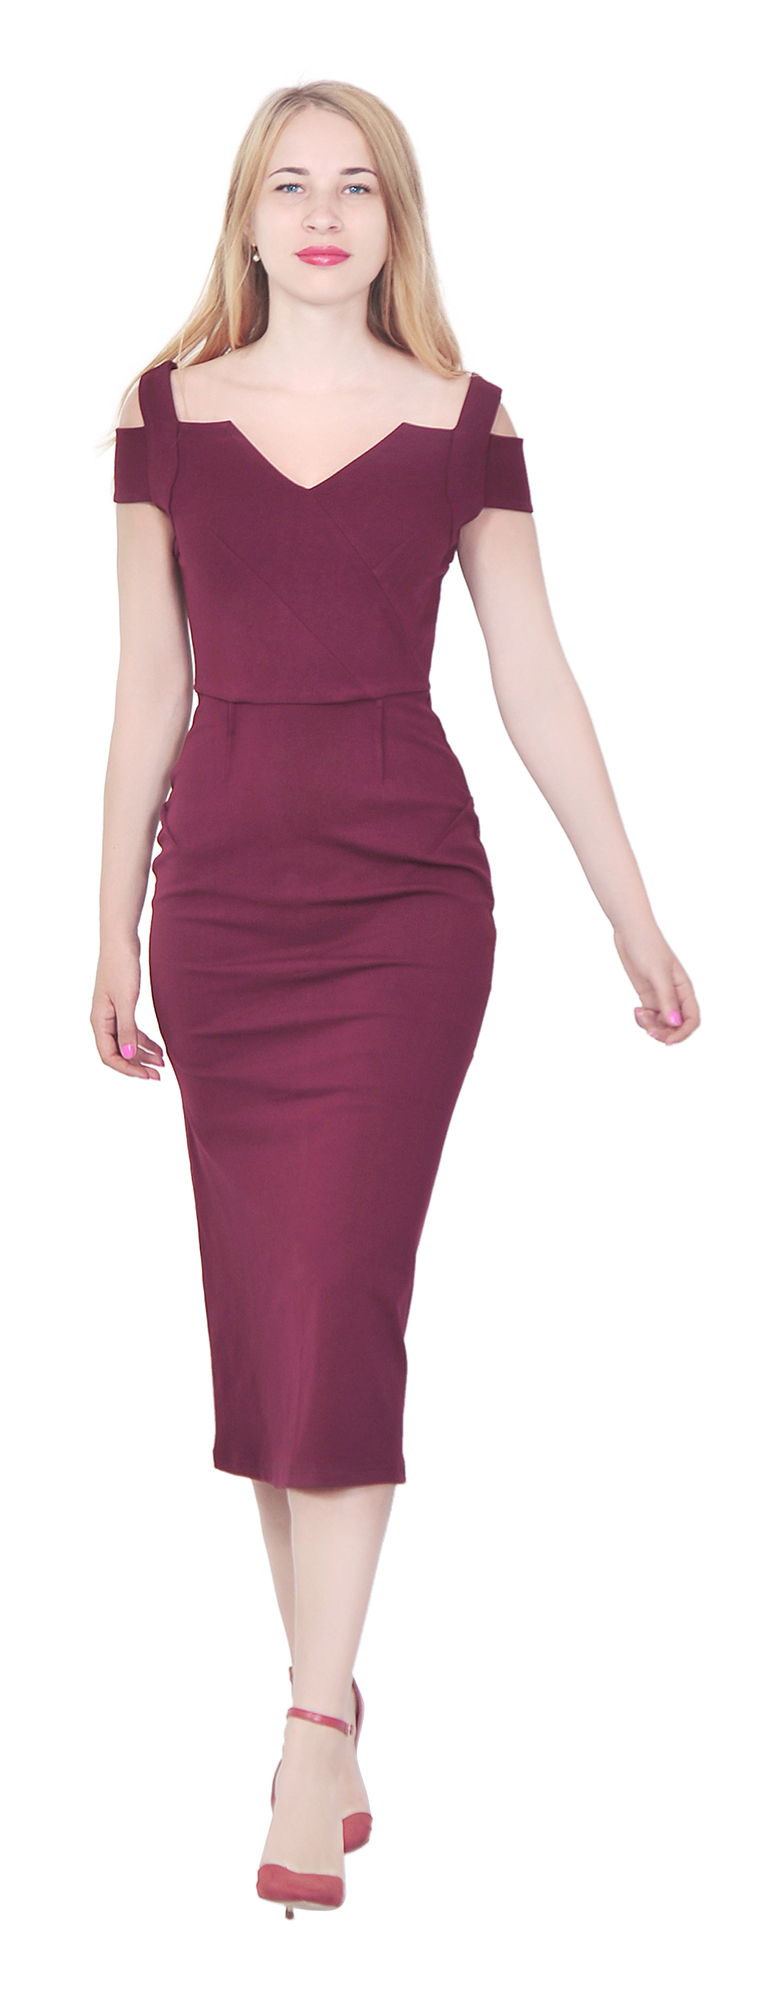 MARYCRAFTS WOMEN\'S COCKTAIL PARTY PROM EVENING DRESS MERMAID MIDI ...